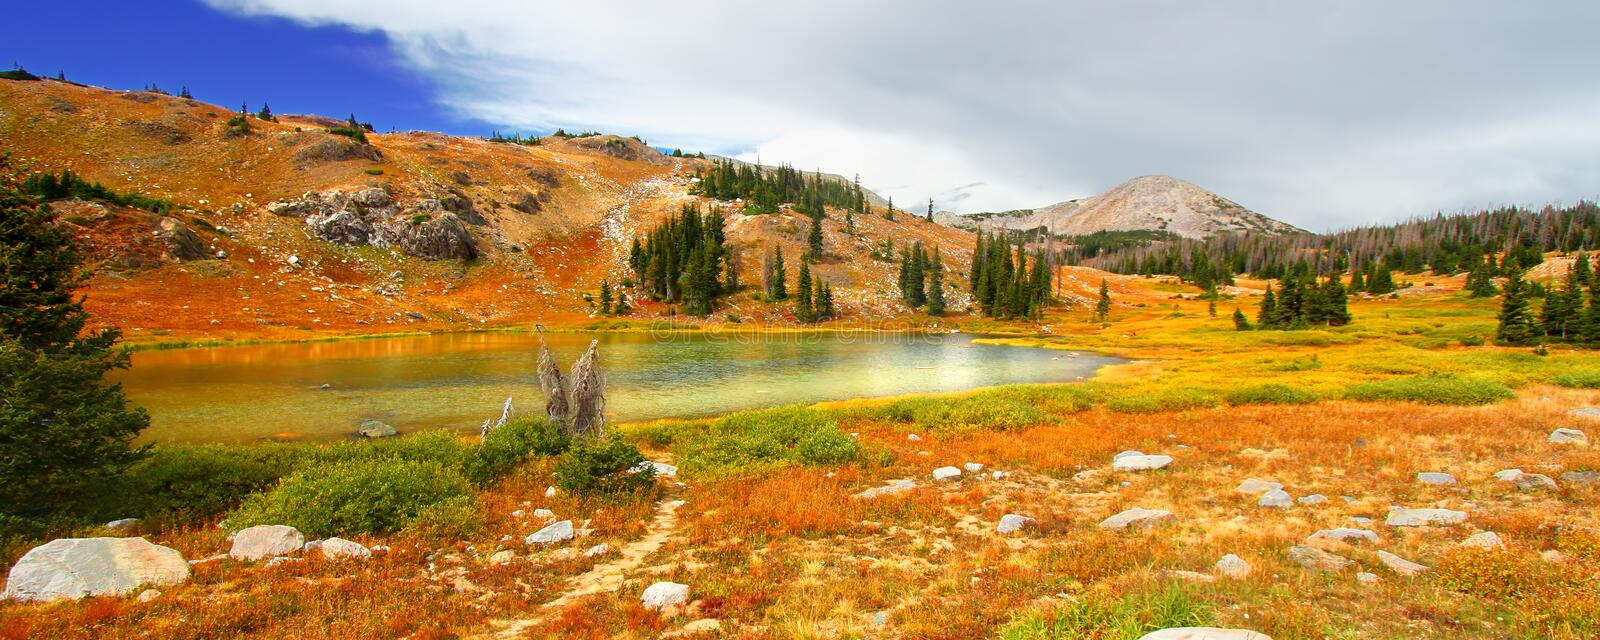 Medicine Bow Lake Scenery Wyoming stock photography